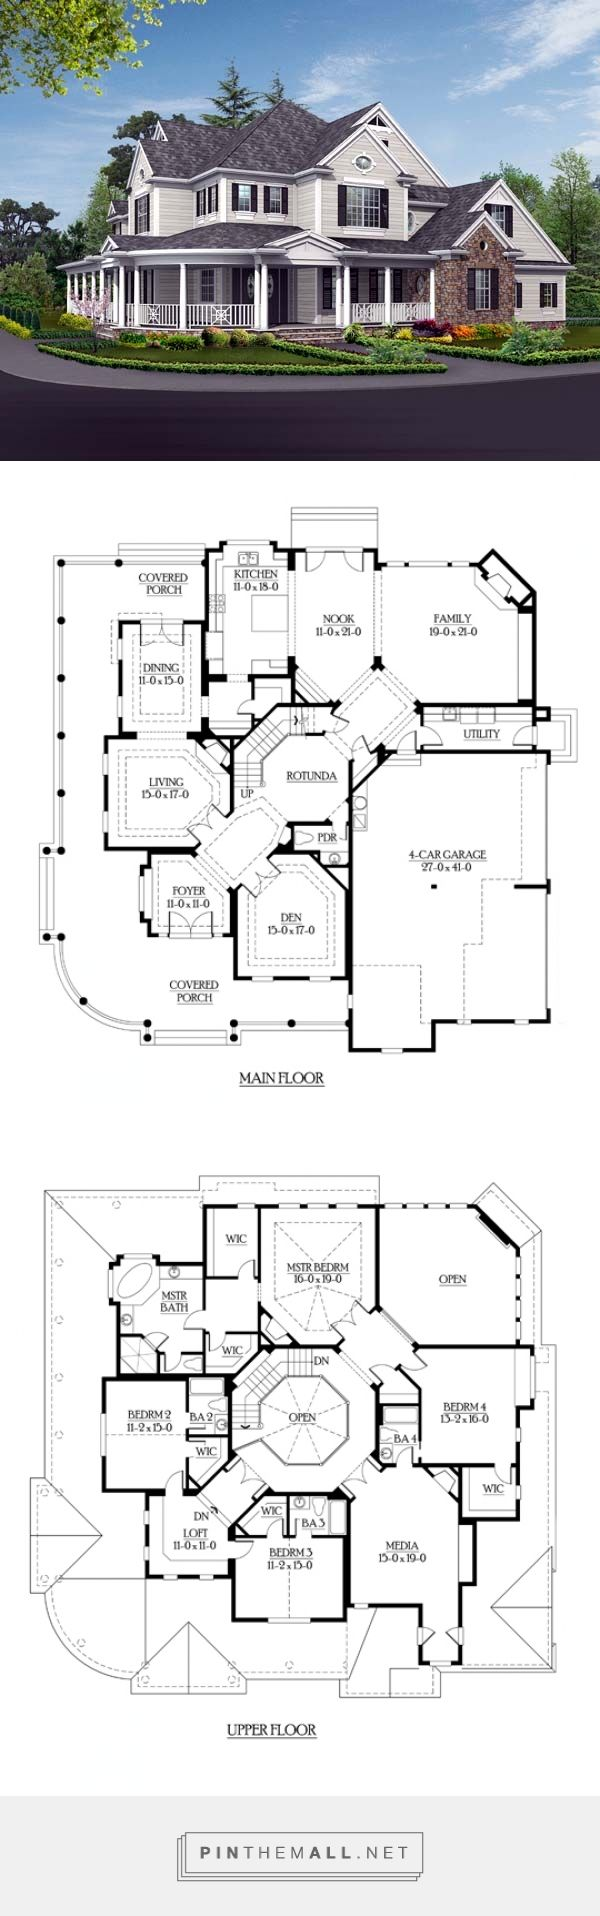 House Plan 87608 at FamilyHomePlans.com - created via http://pinthemall.net